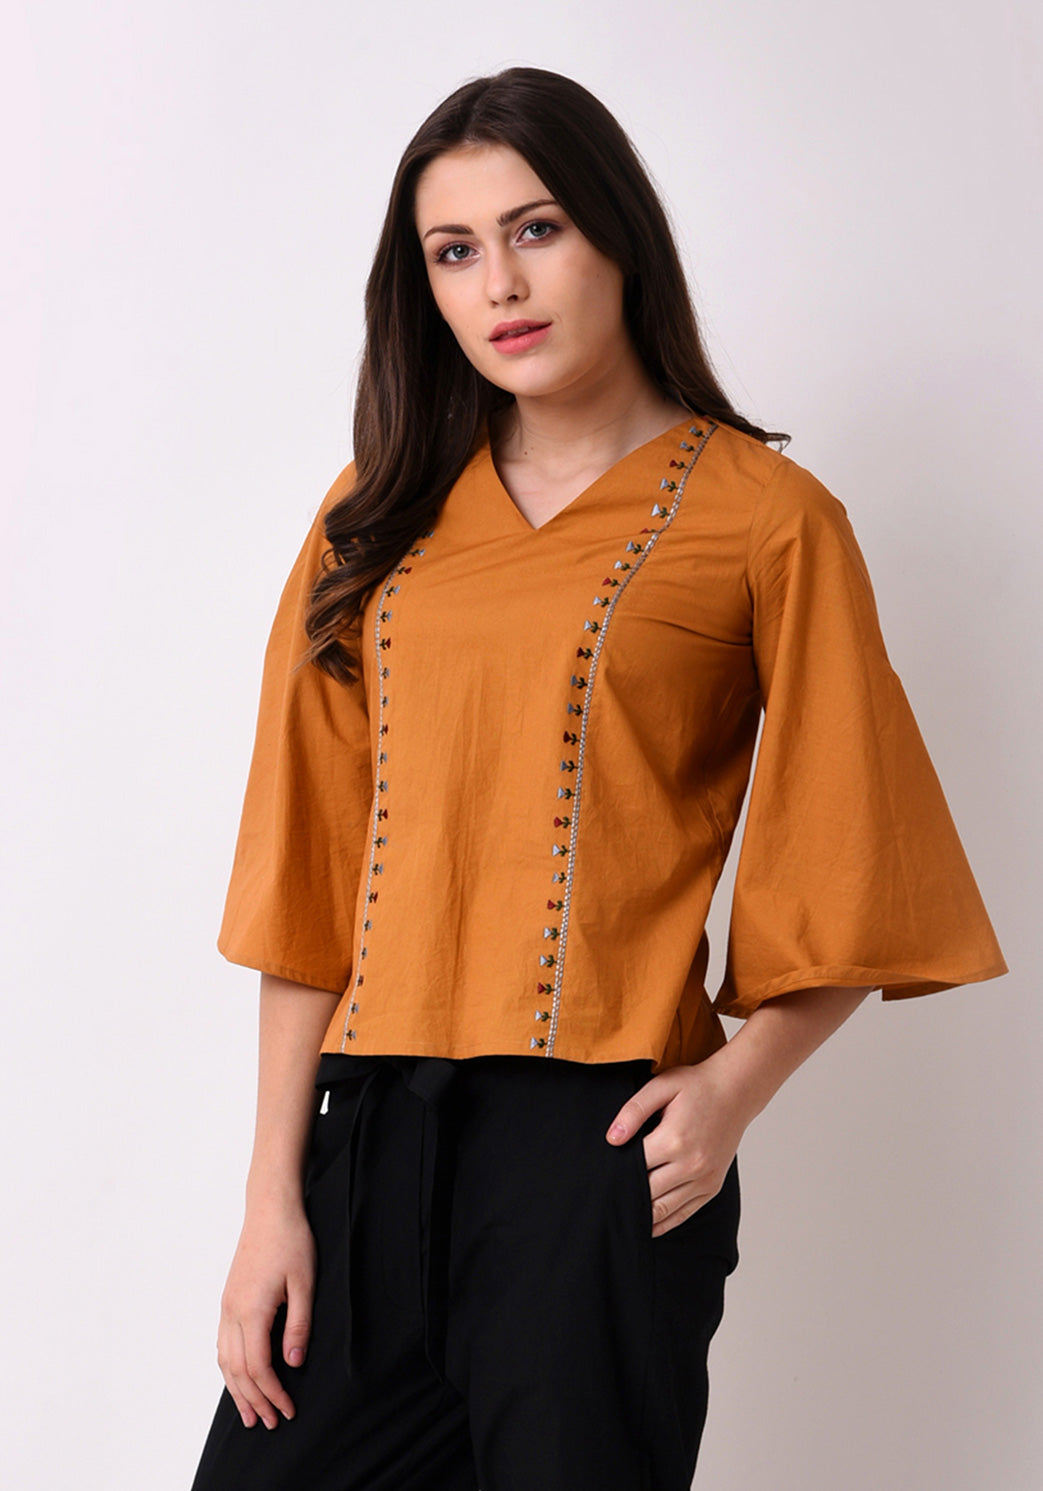 Tribal Embroidered Top - Mustard